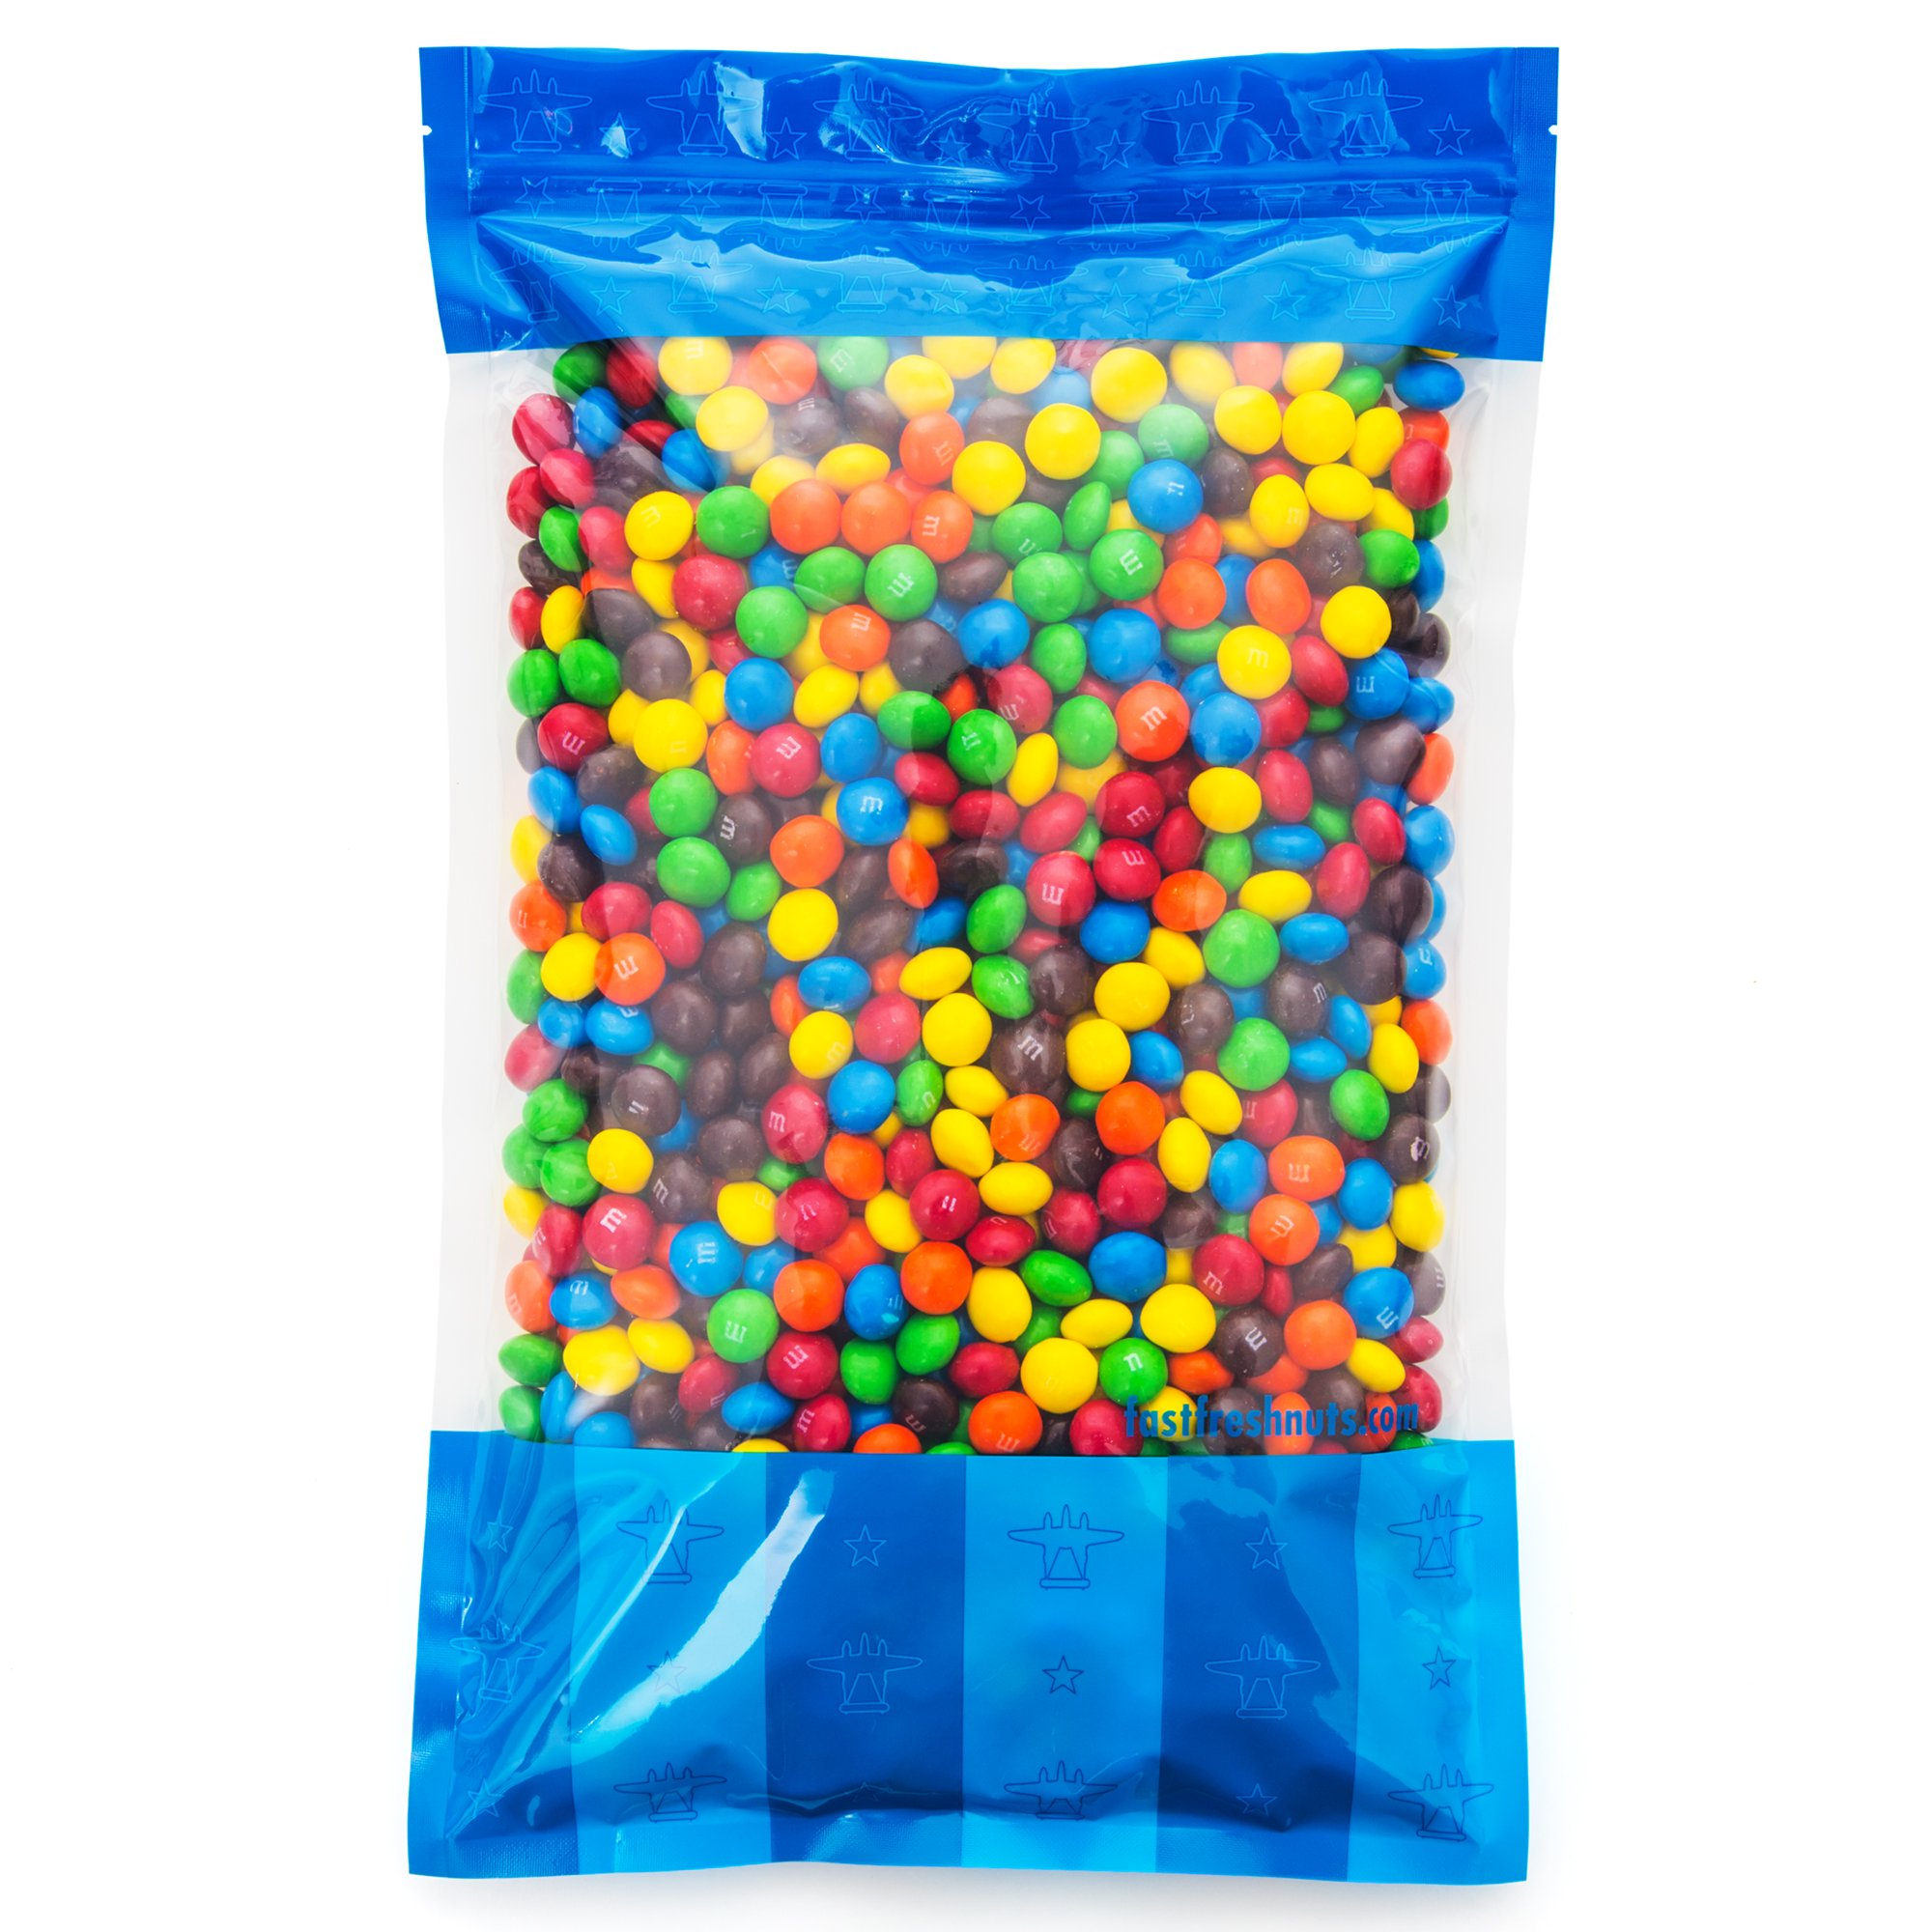 Bulk M&M's Plain Milk Chocolate in Resealable Bomber Bag, Candy Snacks (5 lb Bag) by Fast Fresh Nuts